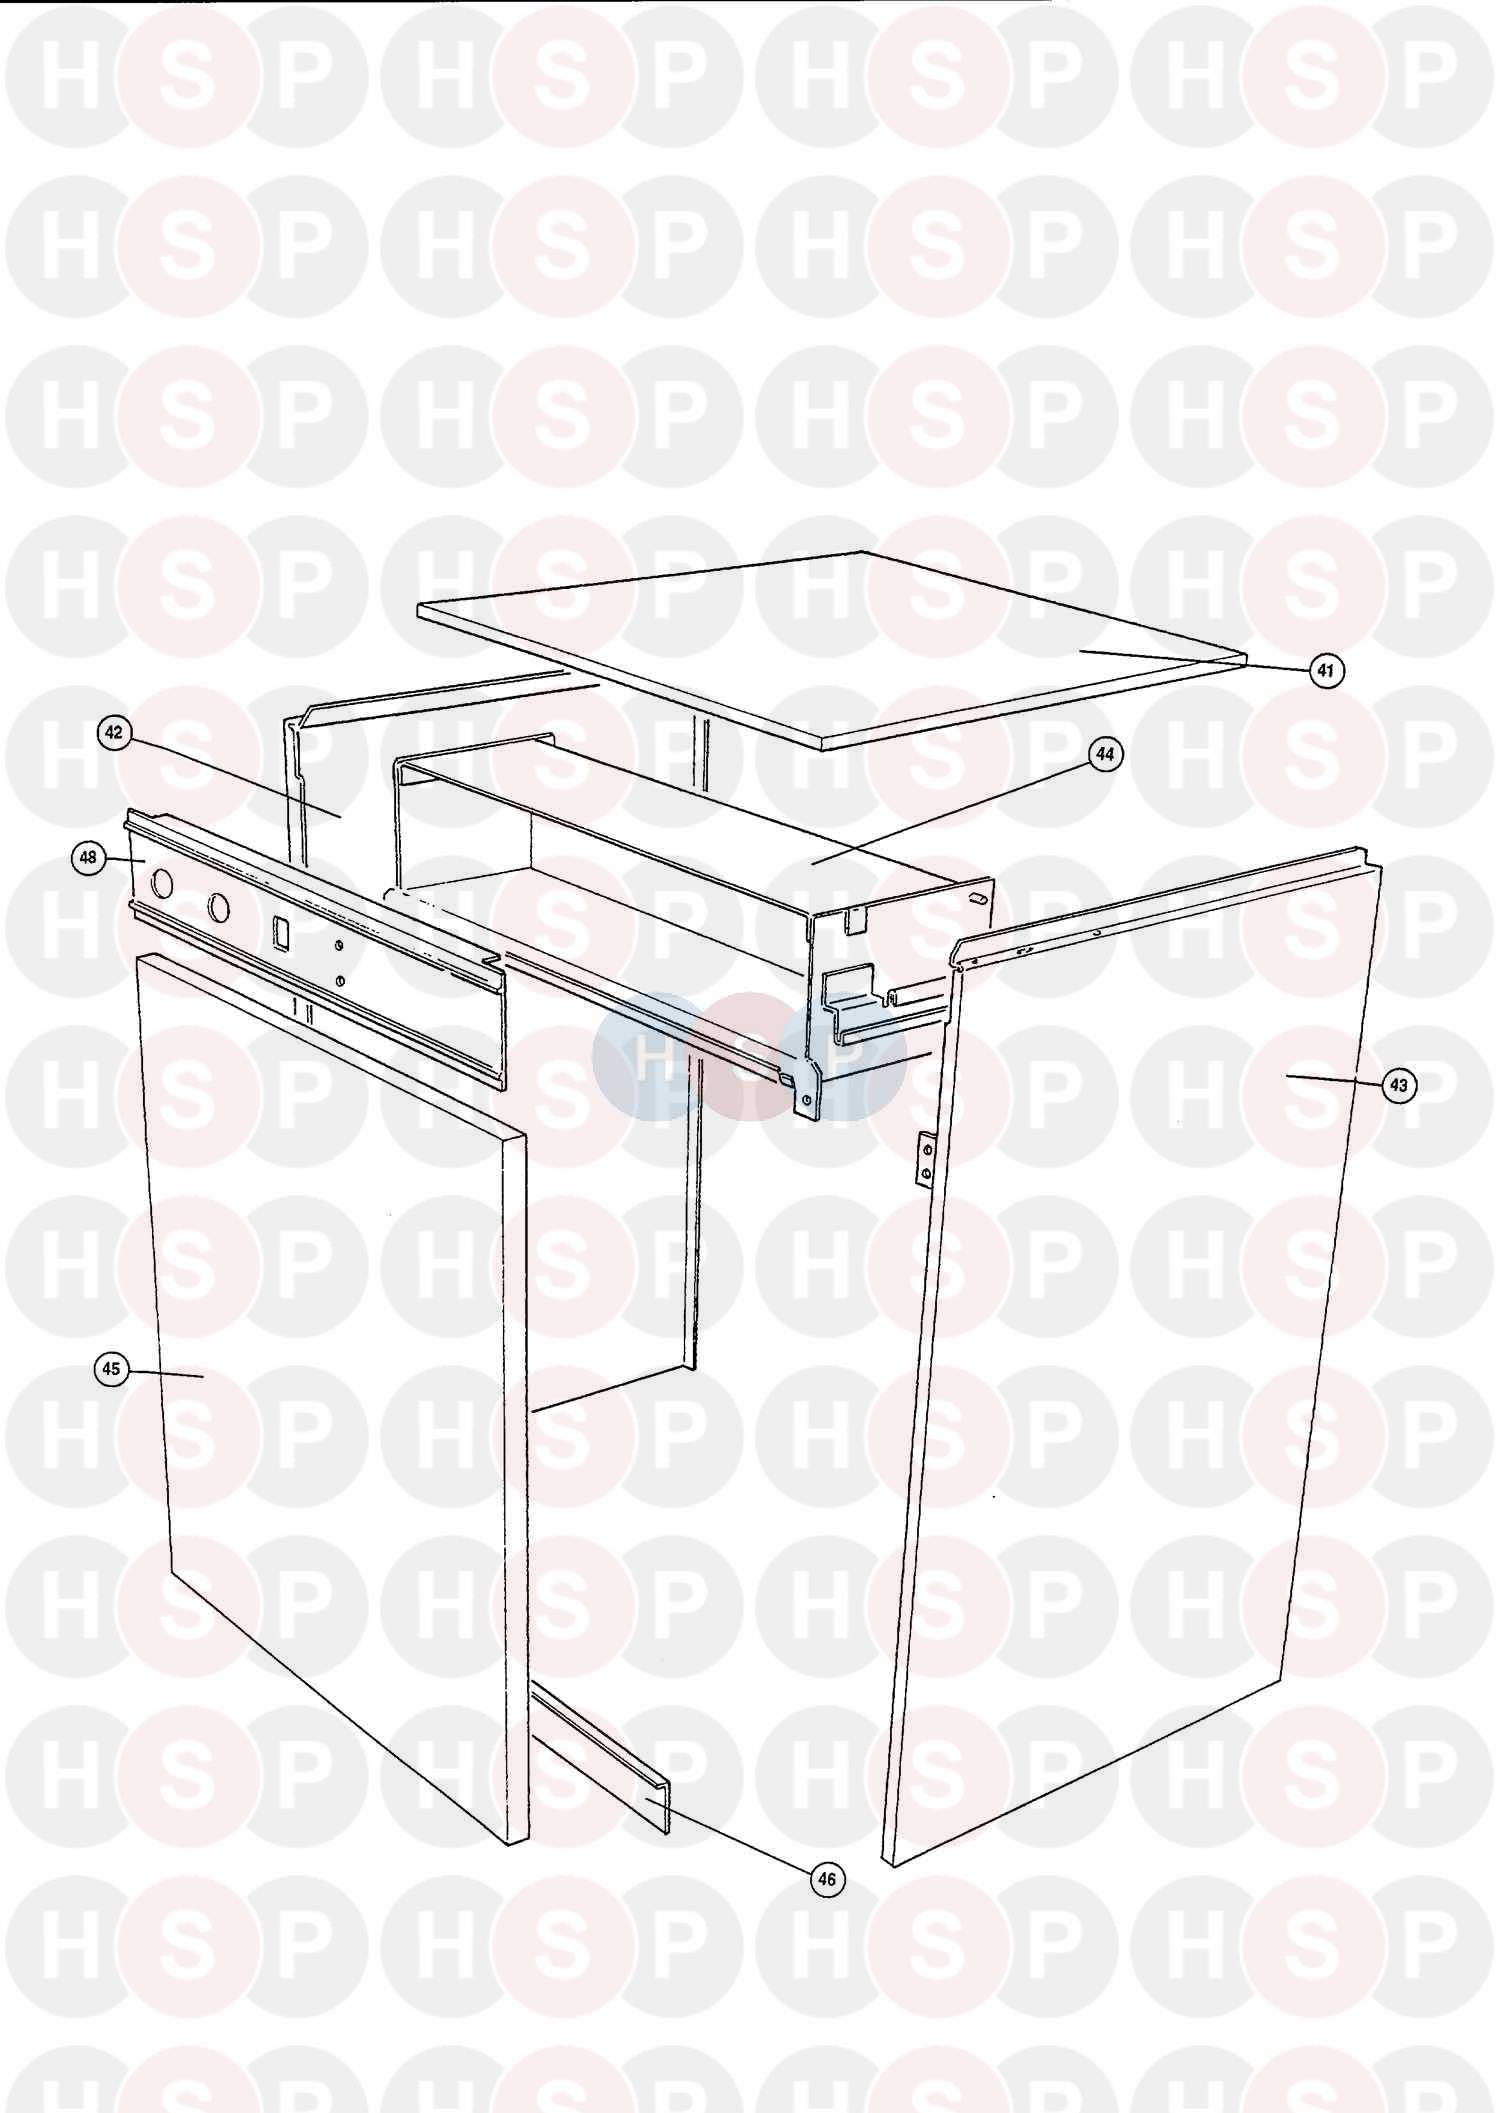 worcester highflow 400 bf lpg boiler diagram  assembly 5